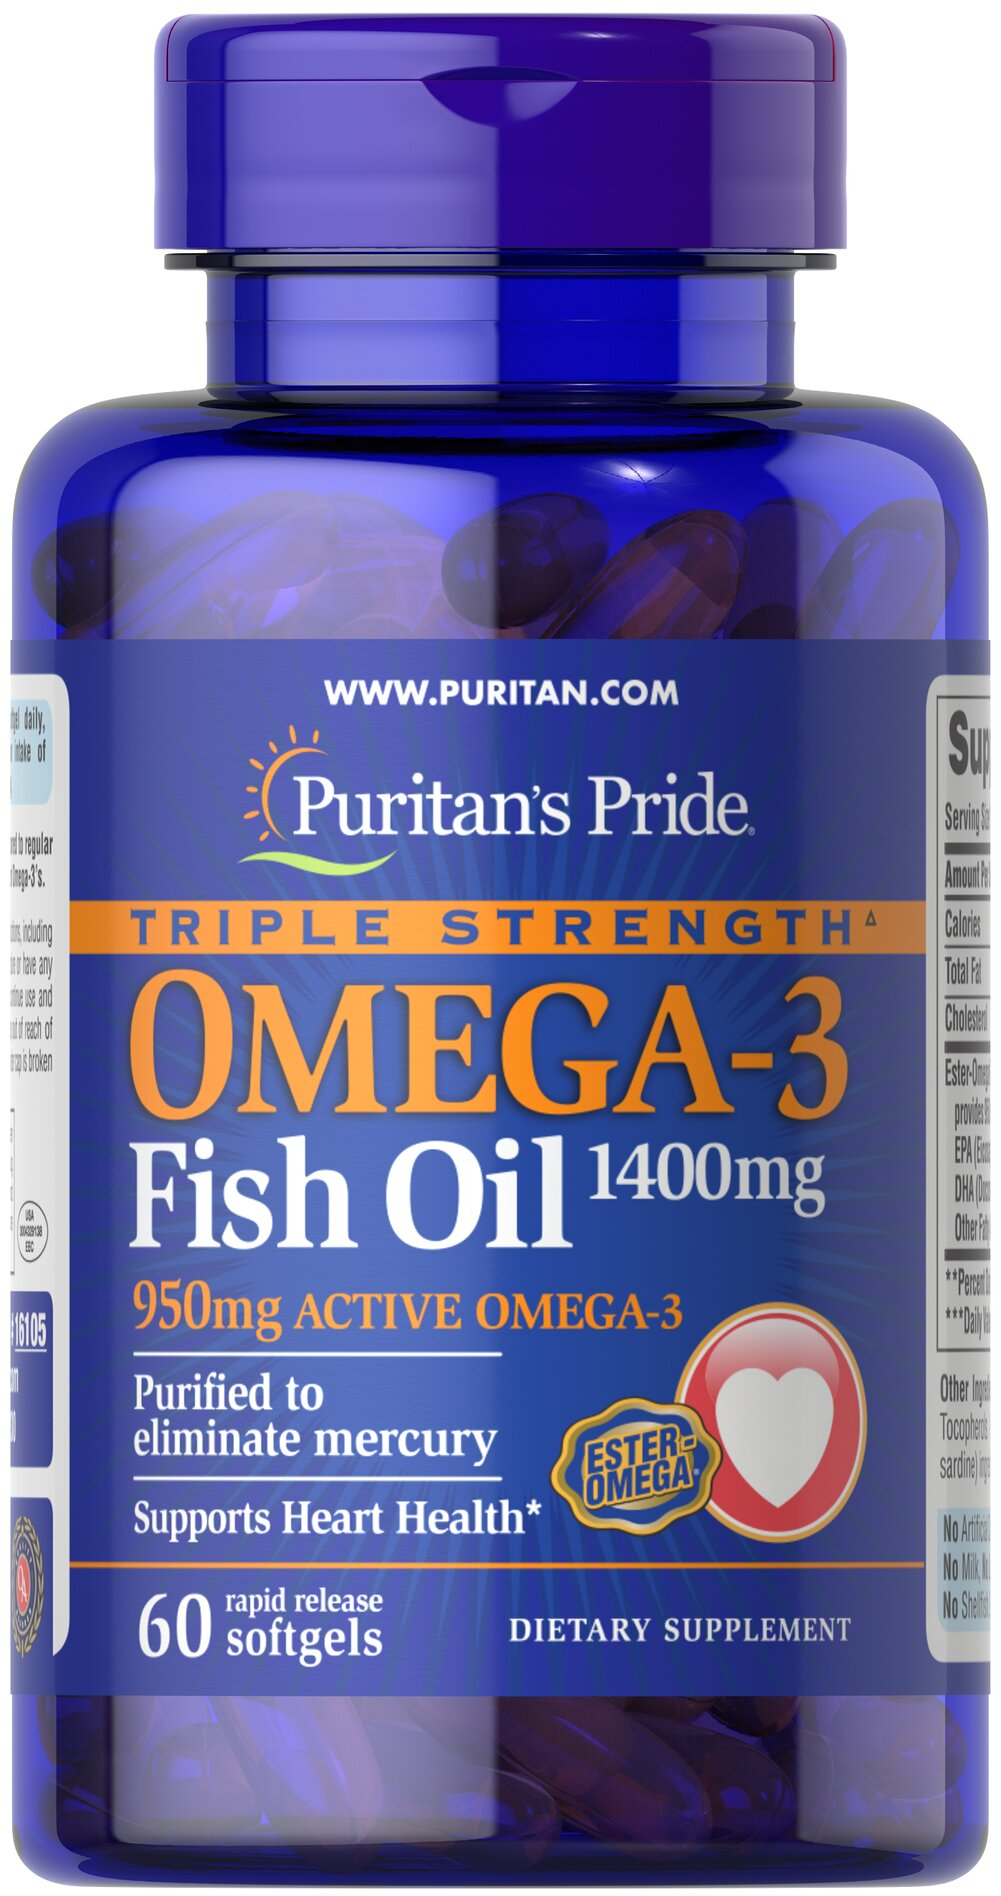 "Triple Strength Omega-3 Fish Oil 1360 mg (950 mg Active Omega-3) Each softgel contains 950 mg of  total Omega-3 fatty acids. Recent  scientific research highlights the importance of getting Omega fatty  acids. Fatty acids - Omega-3, Omega-6 and Omega-9 – are the ""good"" fats  important for cellular, heart and metabolic health.**  Some of these  fatty acids are essential - meaning your body needs them but cannot make  them.** Essential Fatty Acids are required for the structure o"